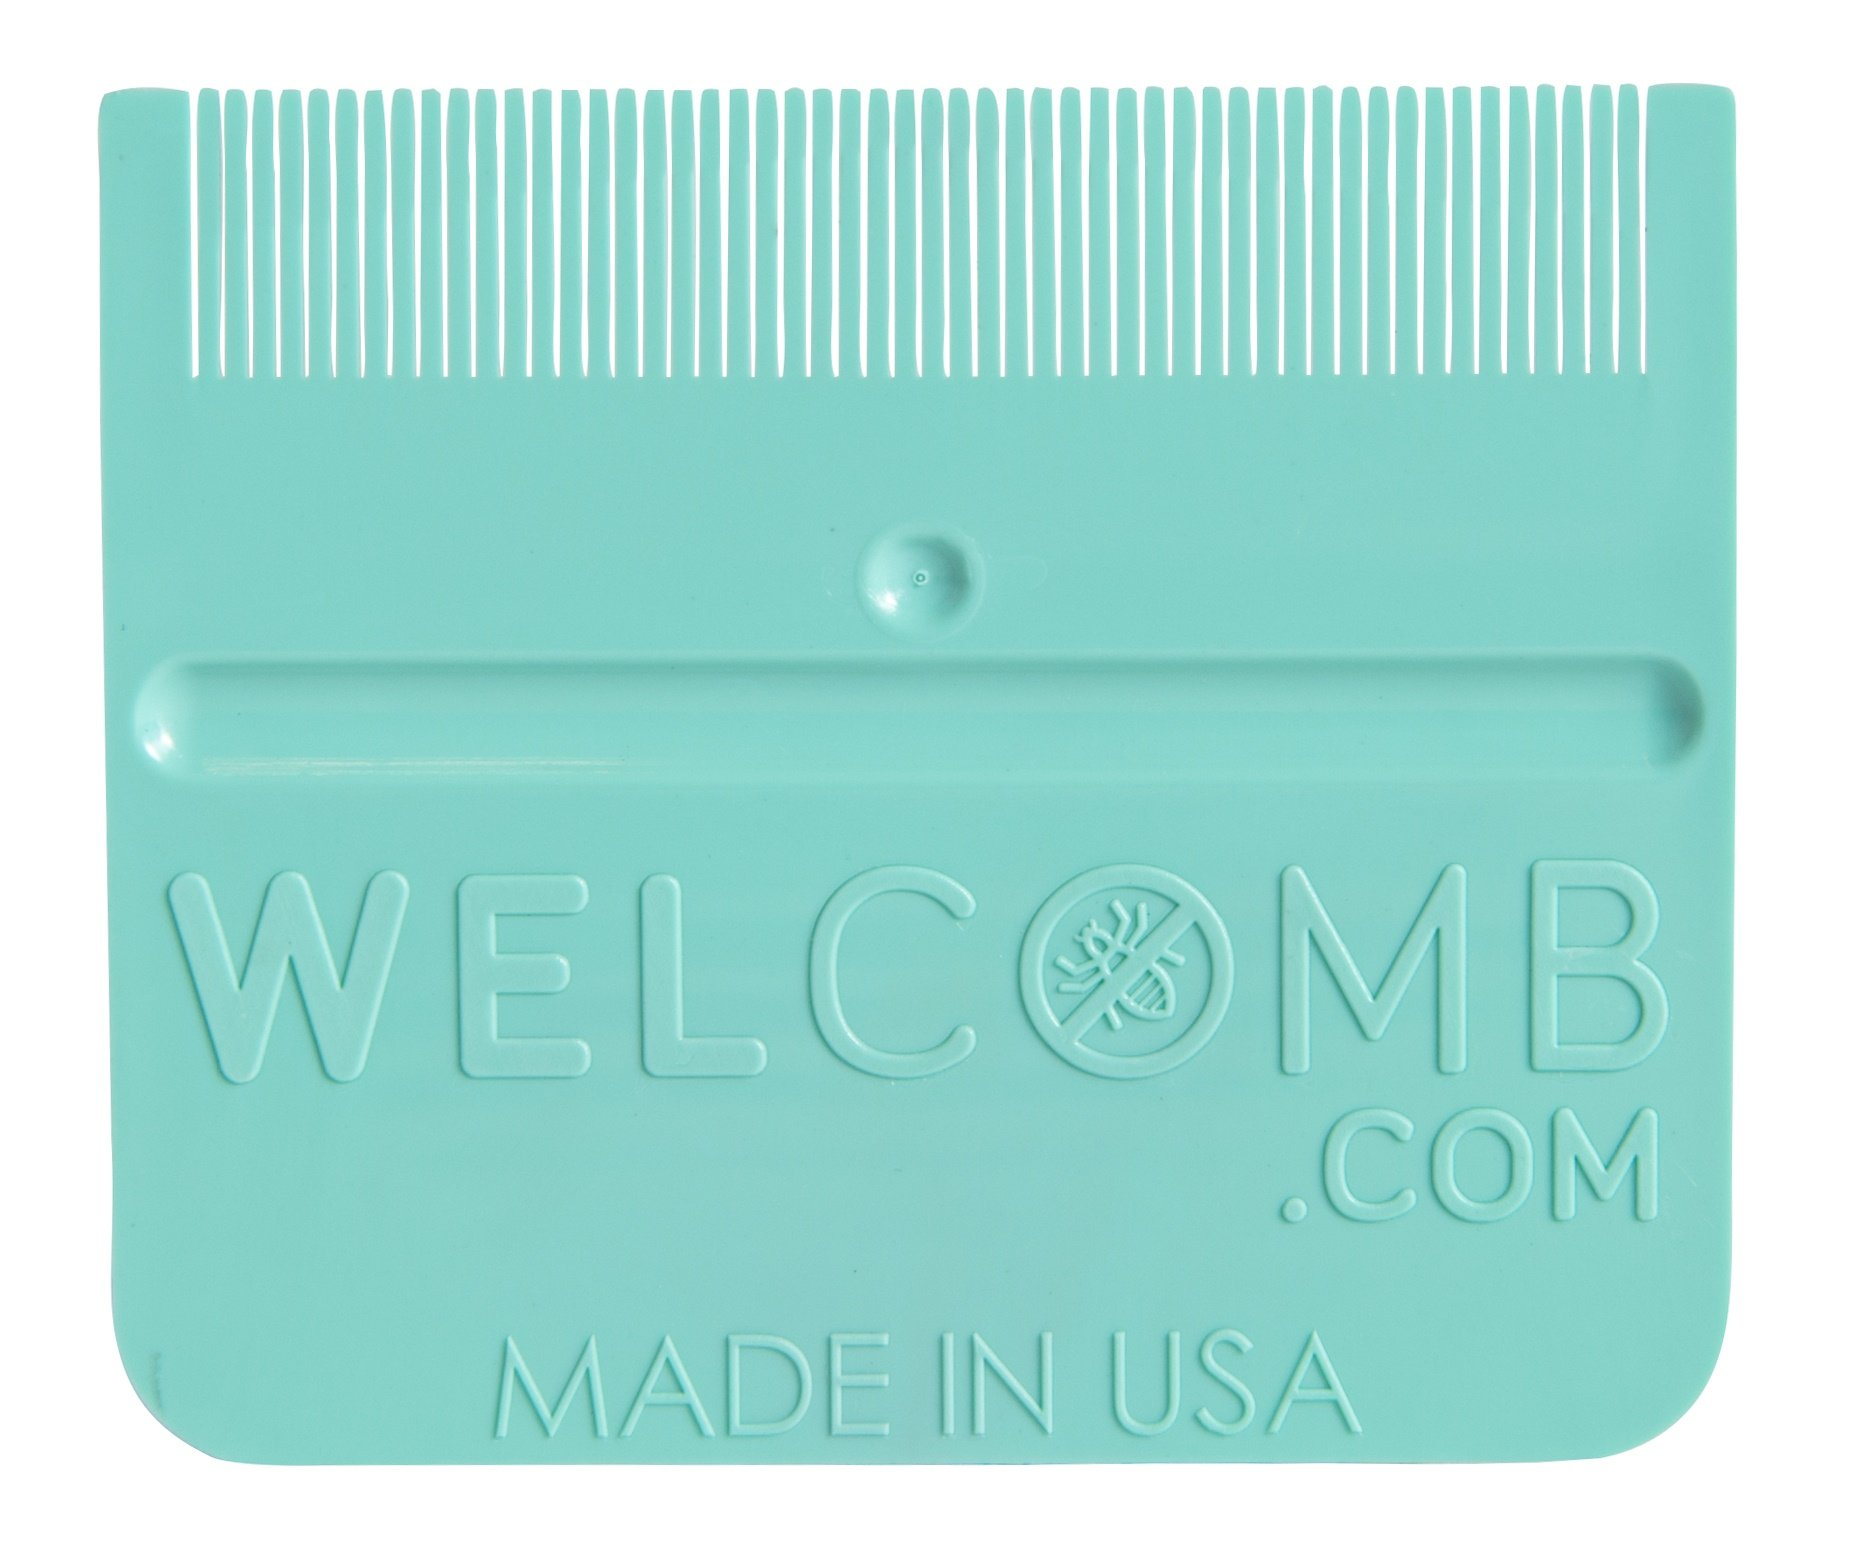 WelComb Lice & Nit Removal Comb (25) by WelComb